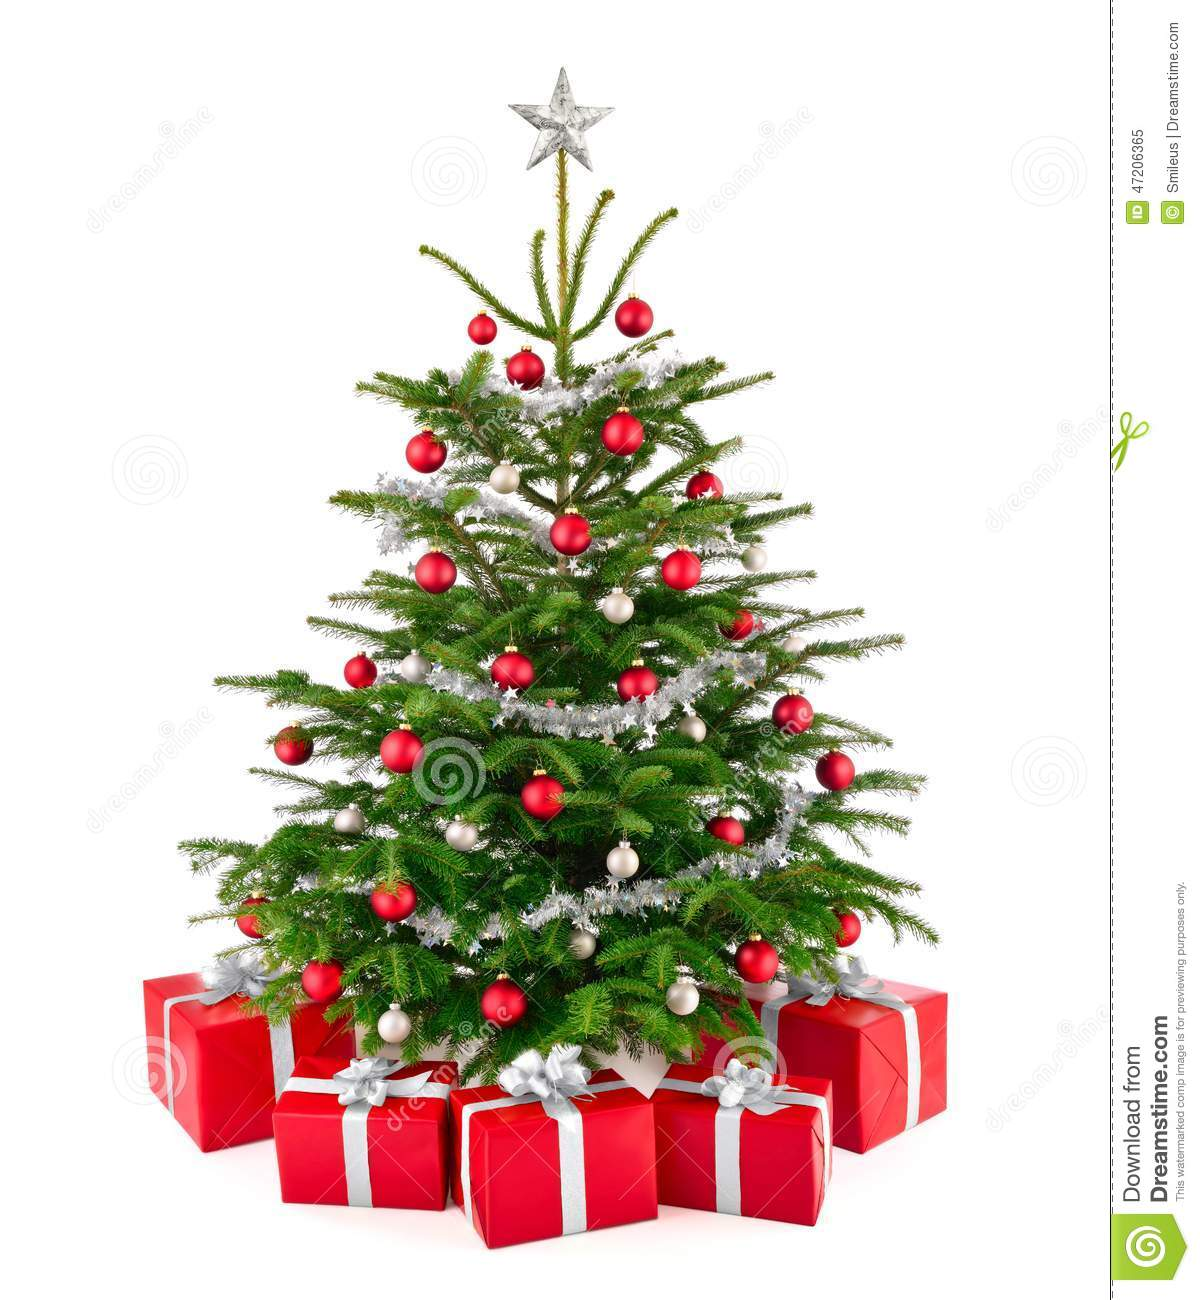 Lush christmas tree with colorful gift boxes royalty free